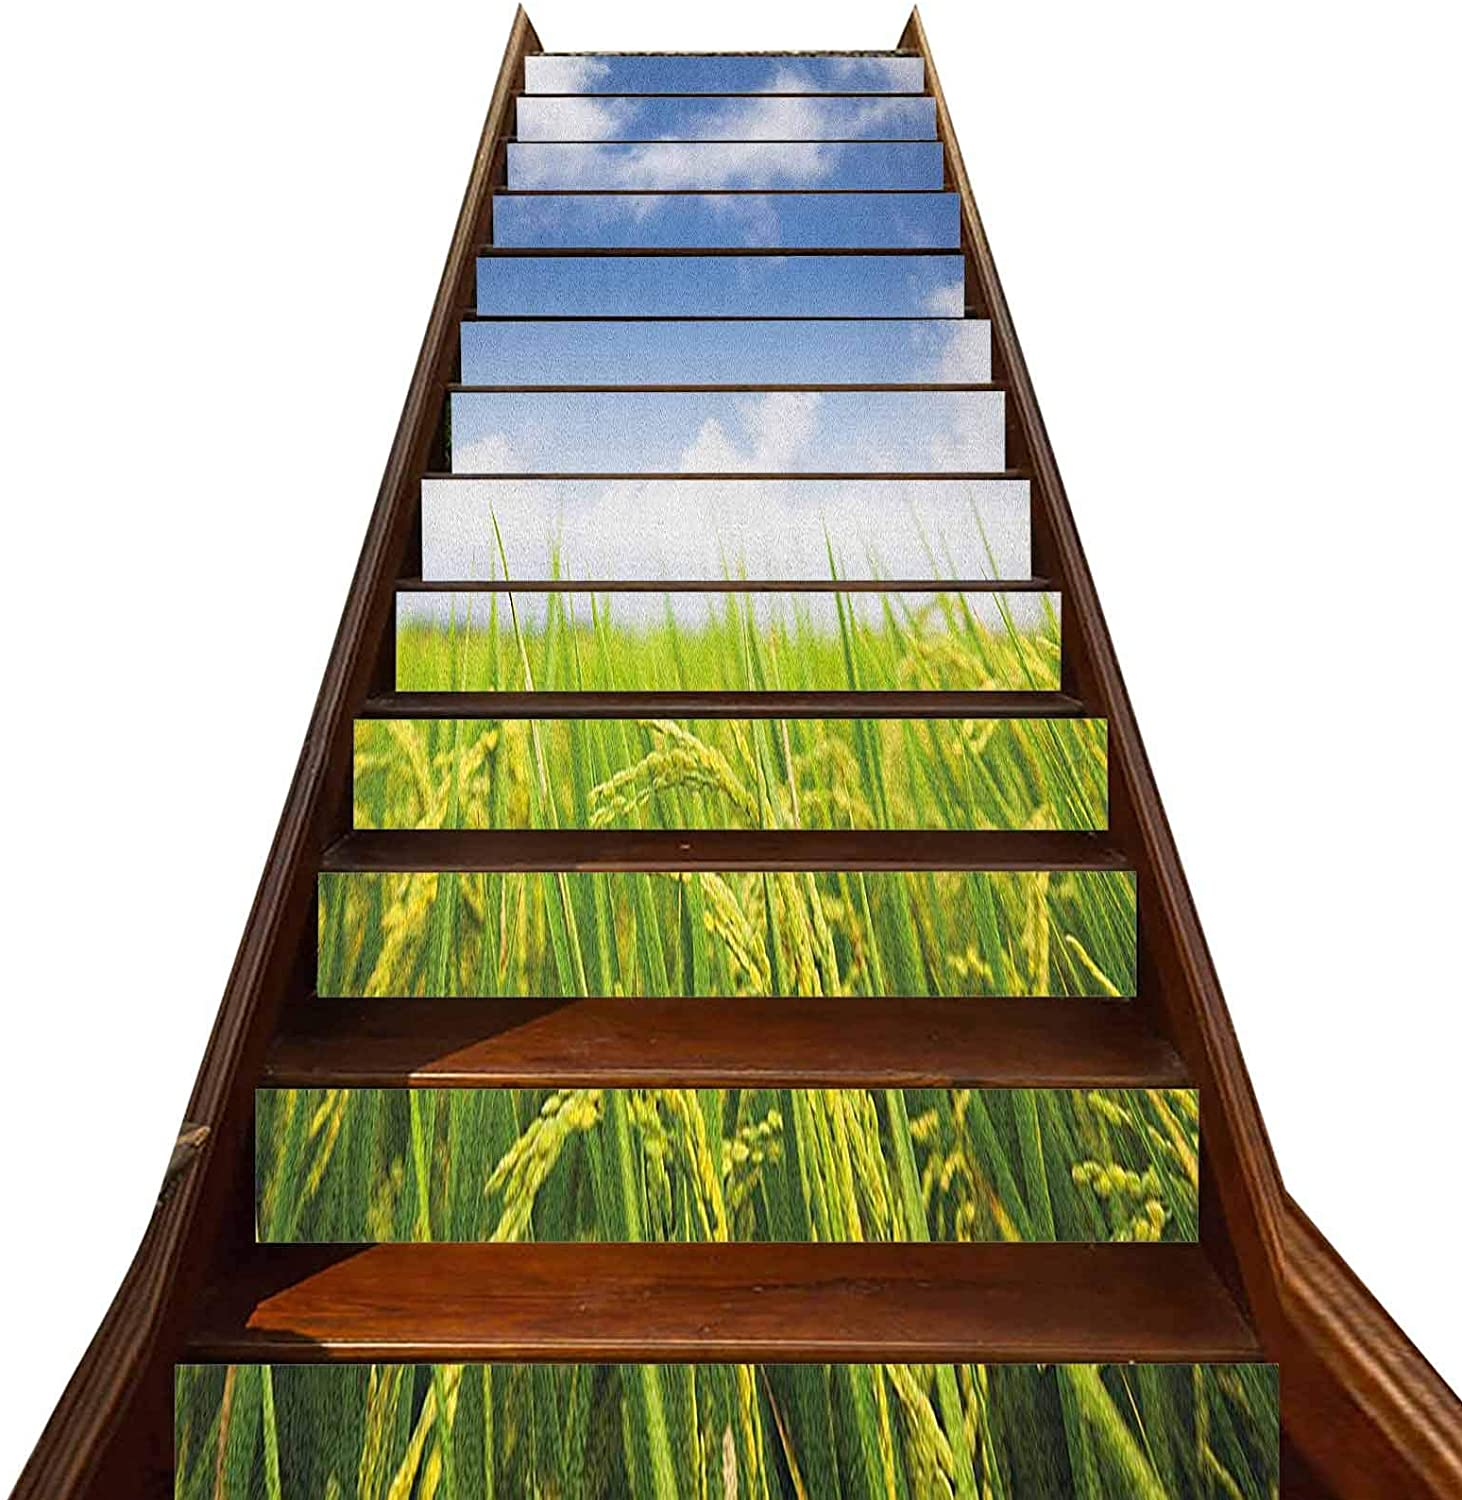 LCGGDB 3D Plant Pattern Stair Stickers 13 PCS,Cultivated Farm Paddy Rice Field Agriculture Food Countryside Vinyl Self-Adhesive Stair Risers Stickers,for Hotel Home Staircase Riser Decor